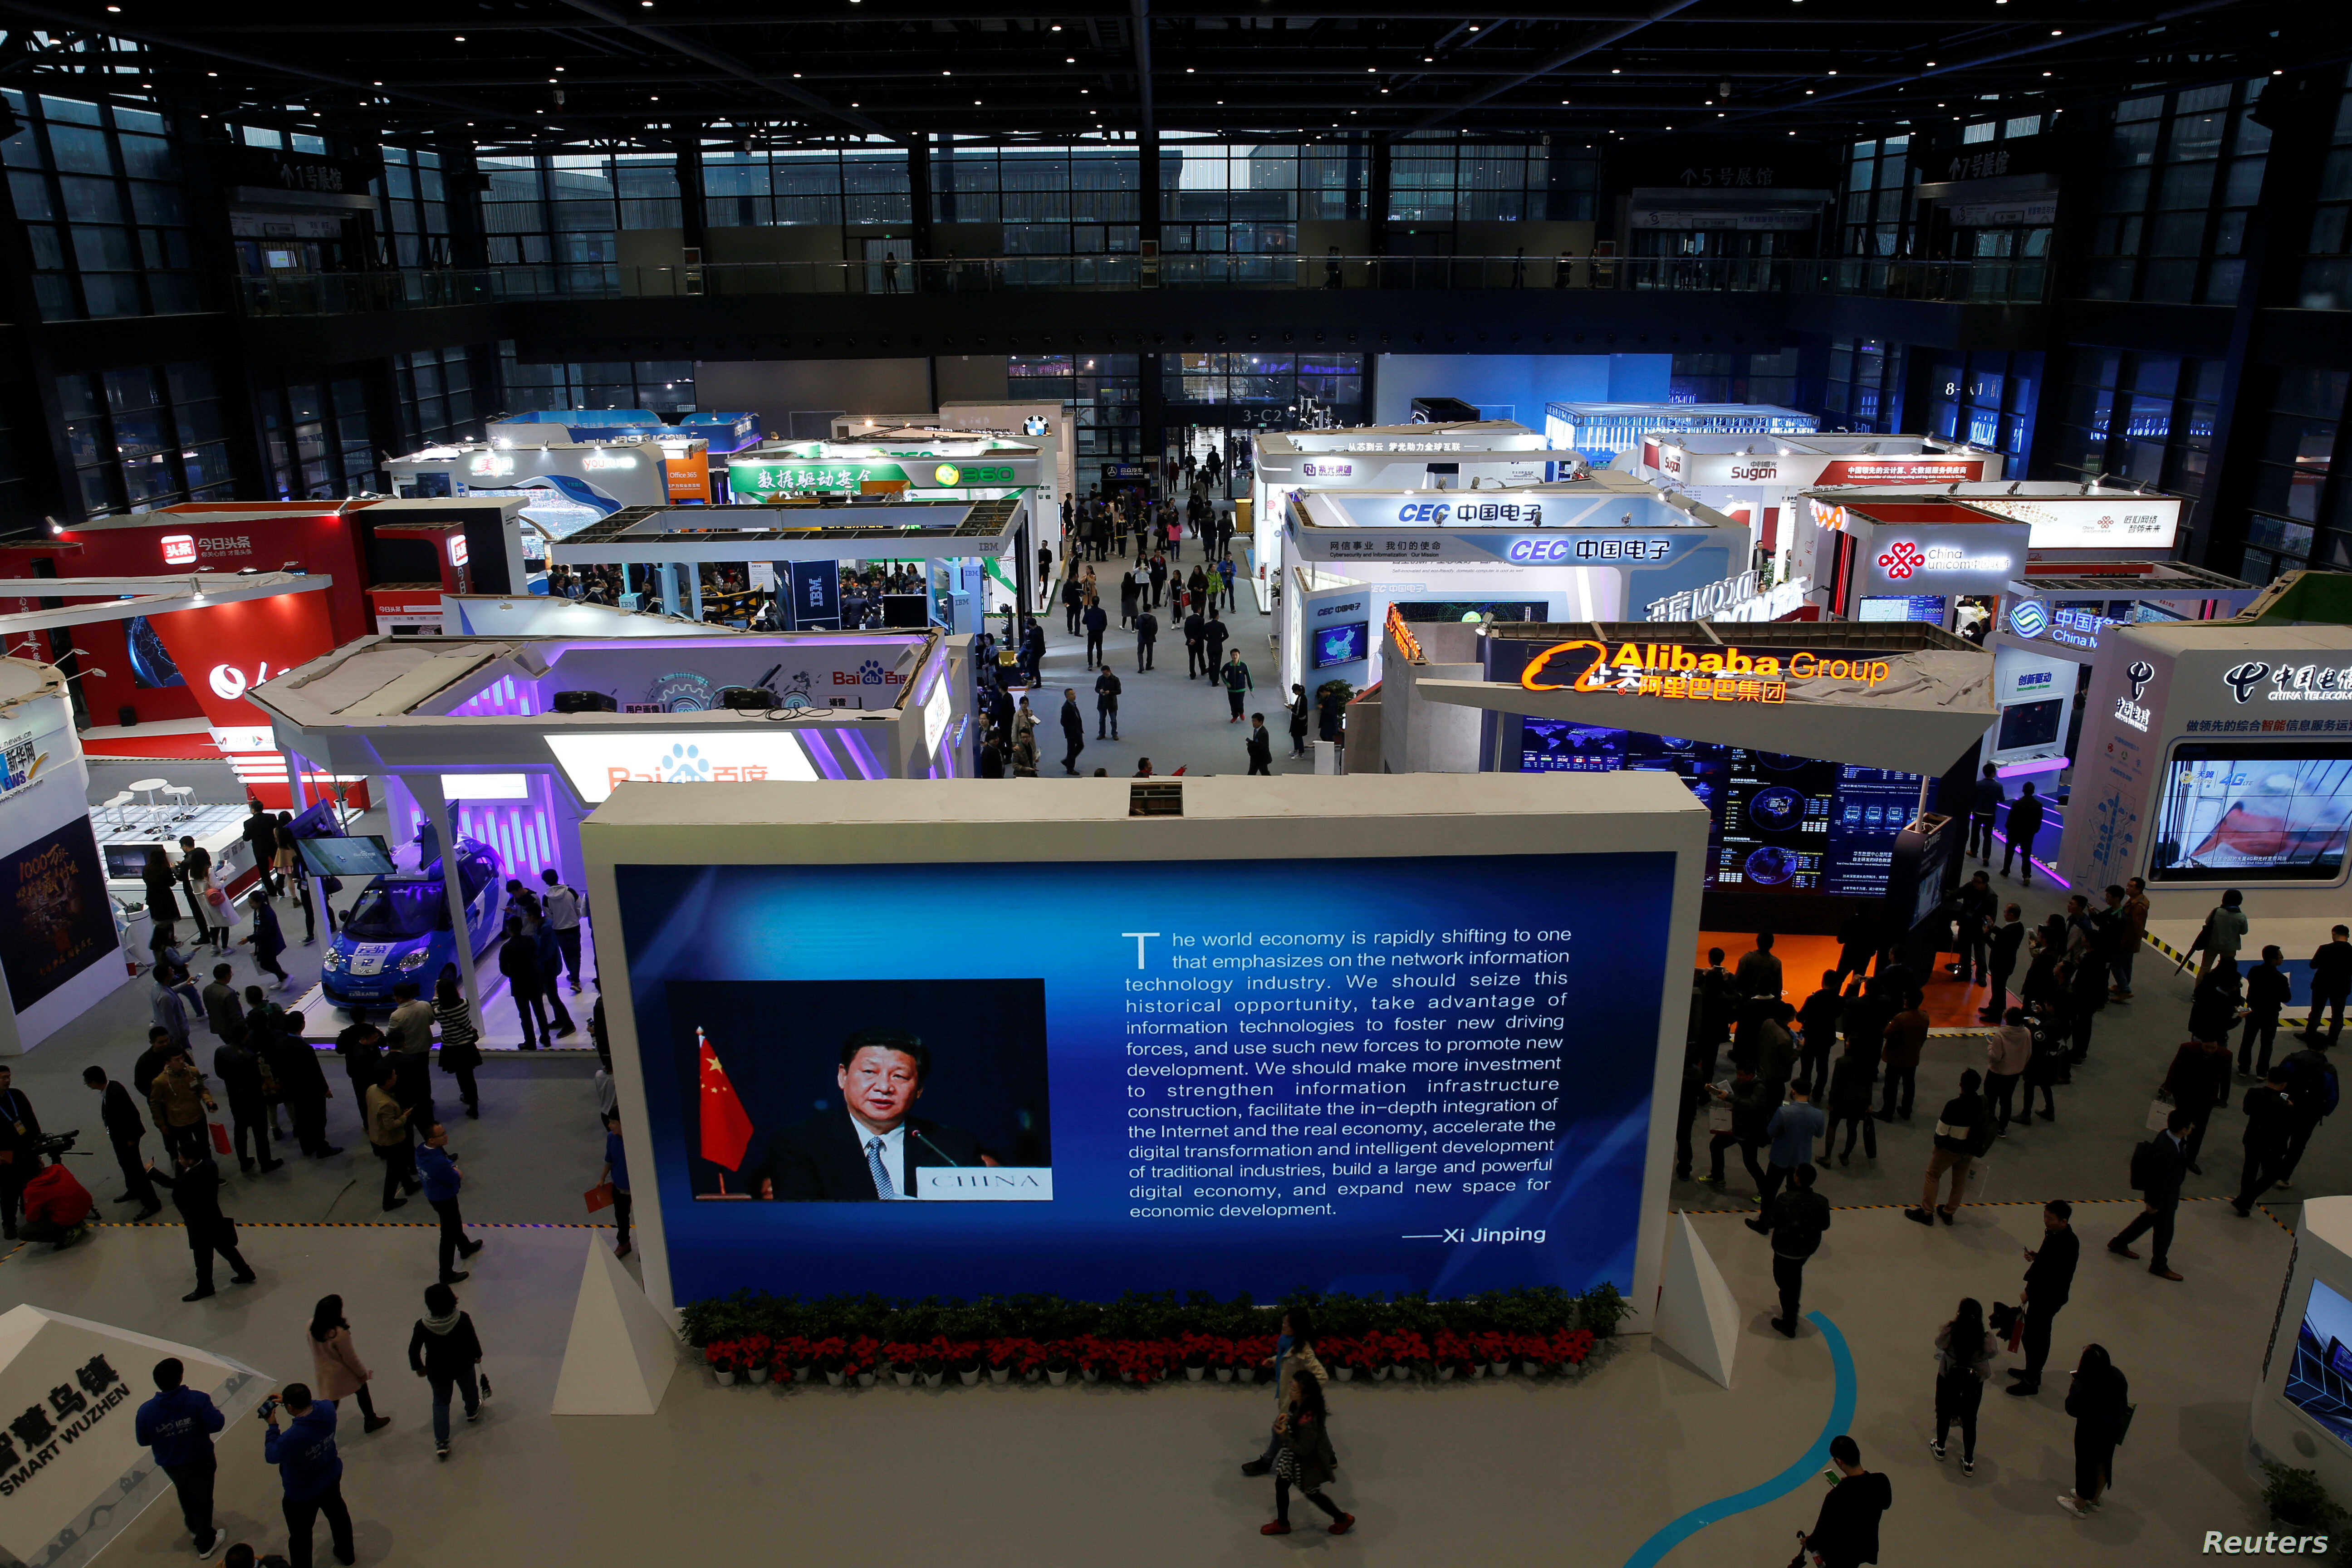 FILE - China's President Xi Jinping is shown on a screen in front of logos of China's leading internet companies during the World Internet Conference in Wuzhen town of Jiaxing, Zhejiang province, China, Nov. 17, 2016.